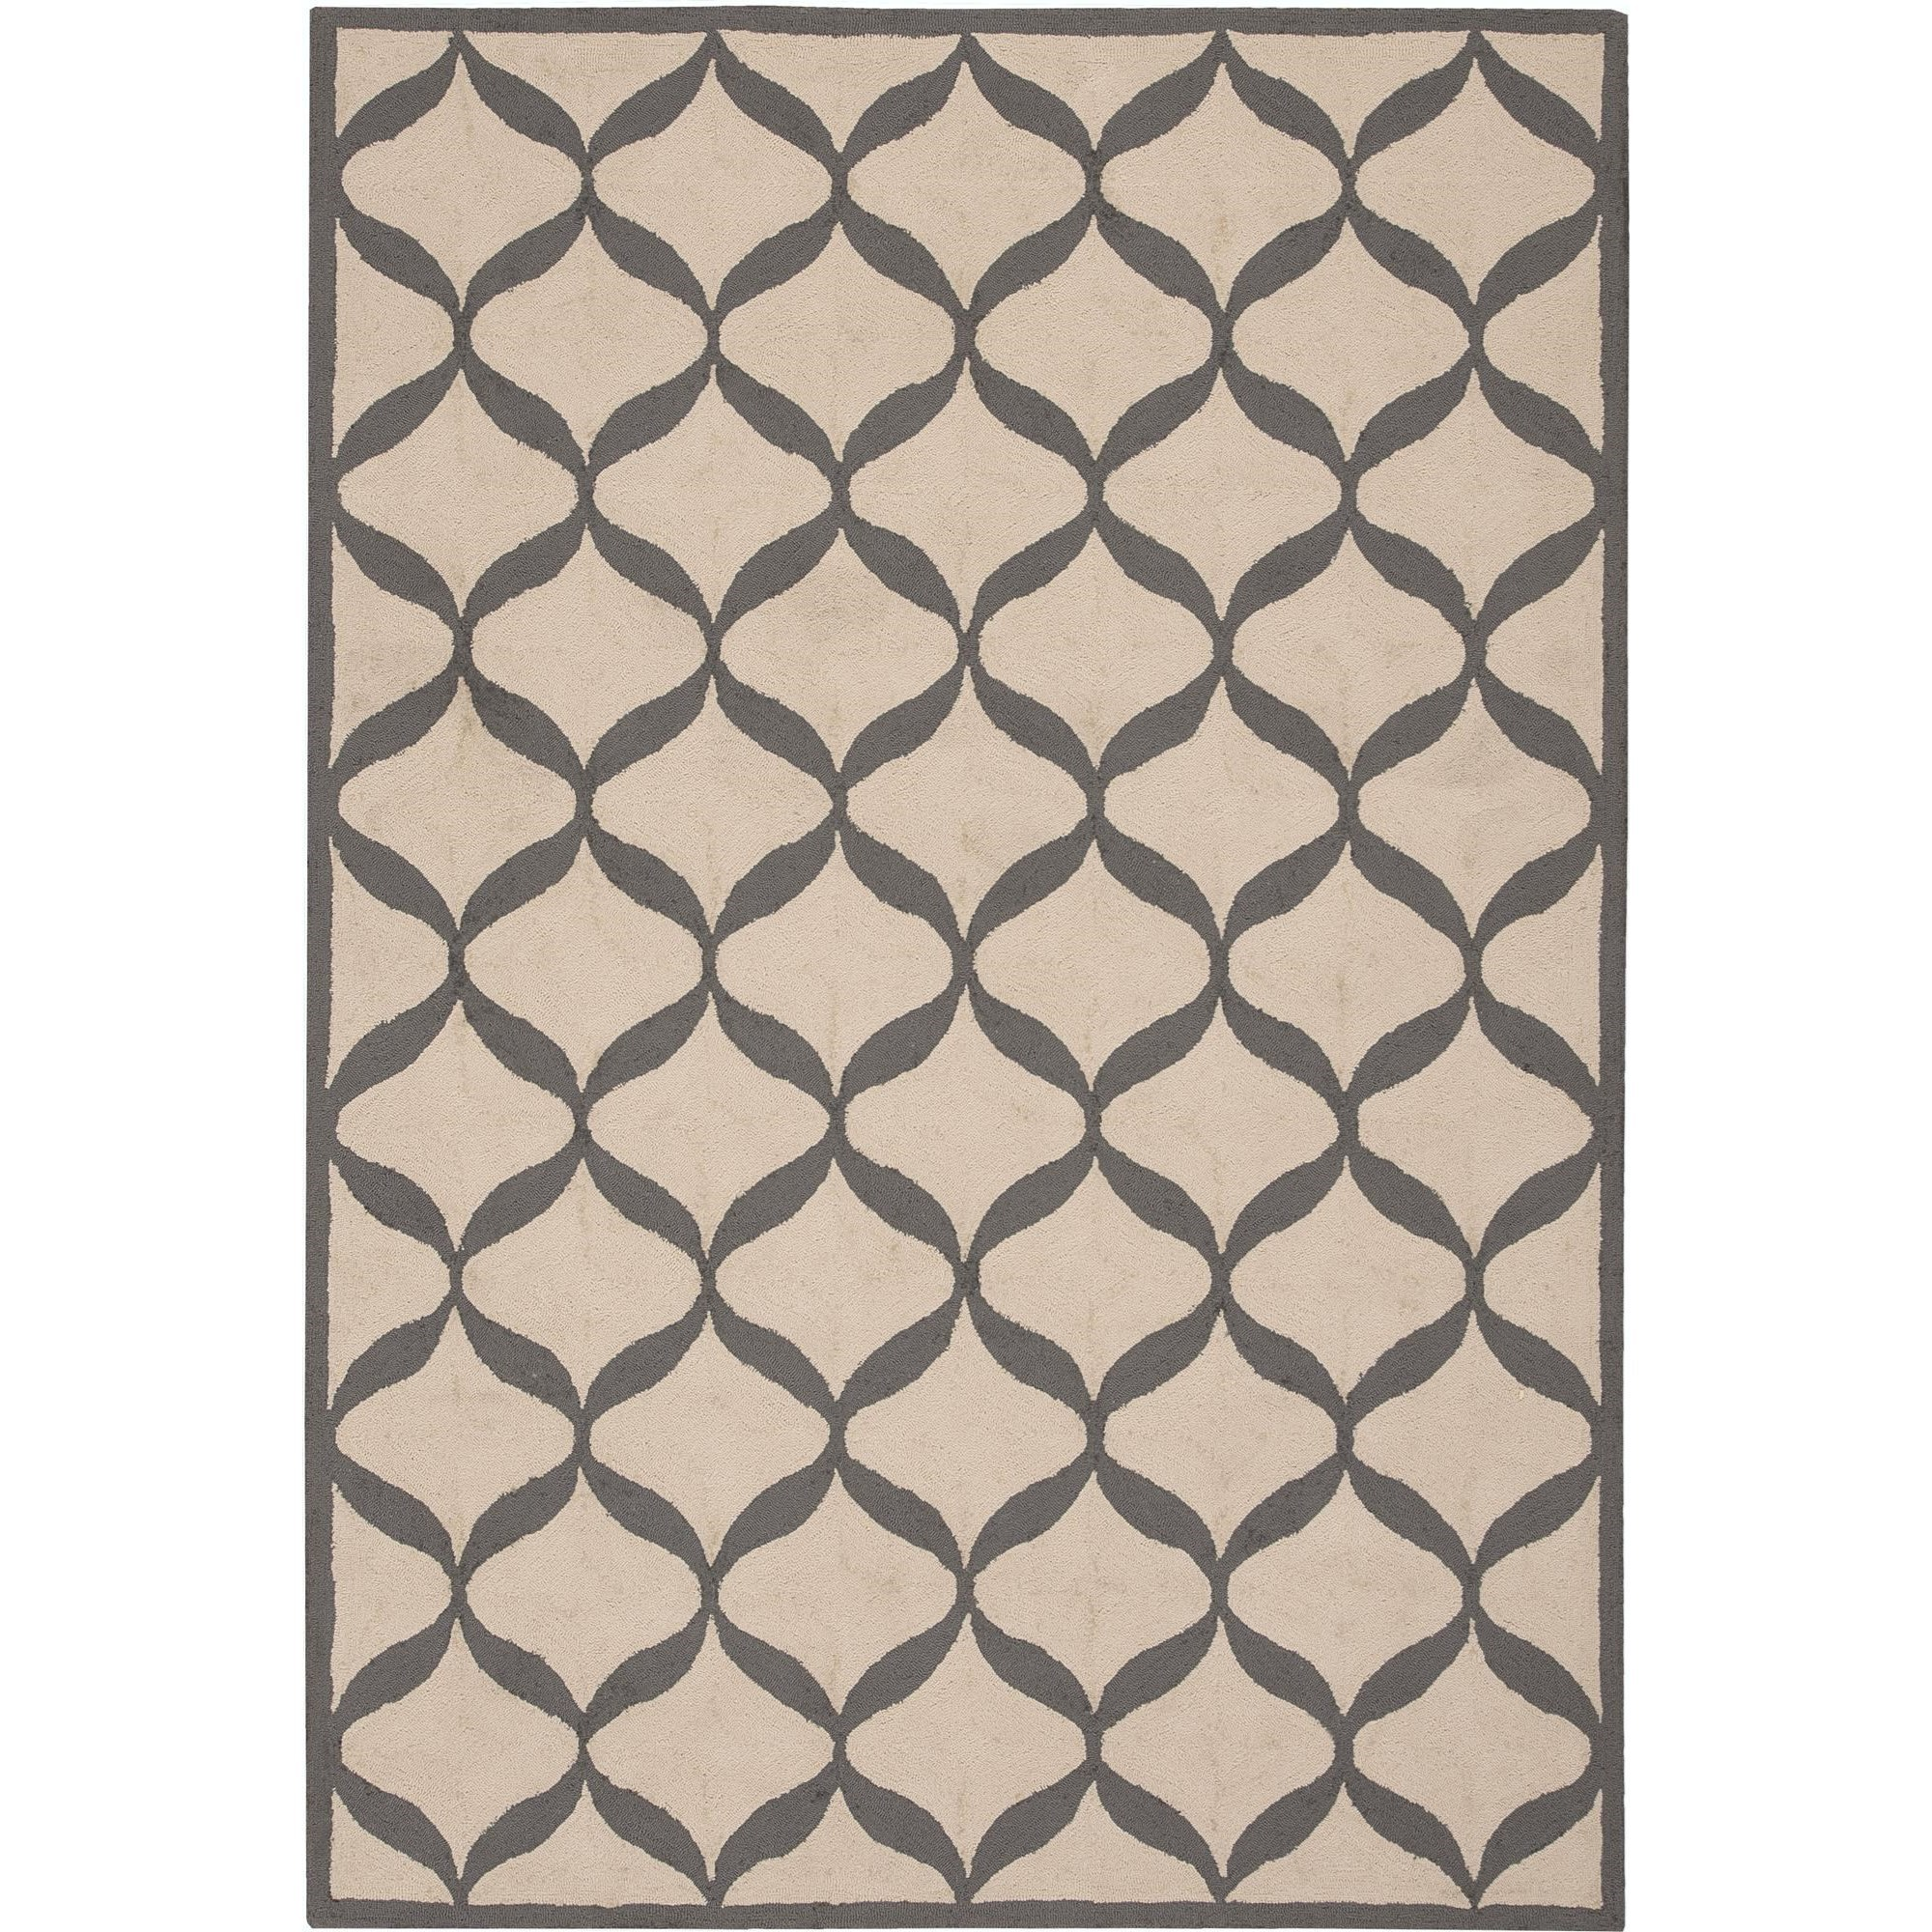 Nourison Decor 8' x 10' White/Light Grey Area Rug - Item Number: 32326